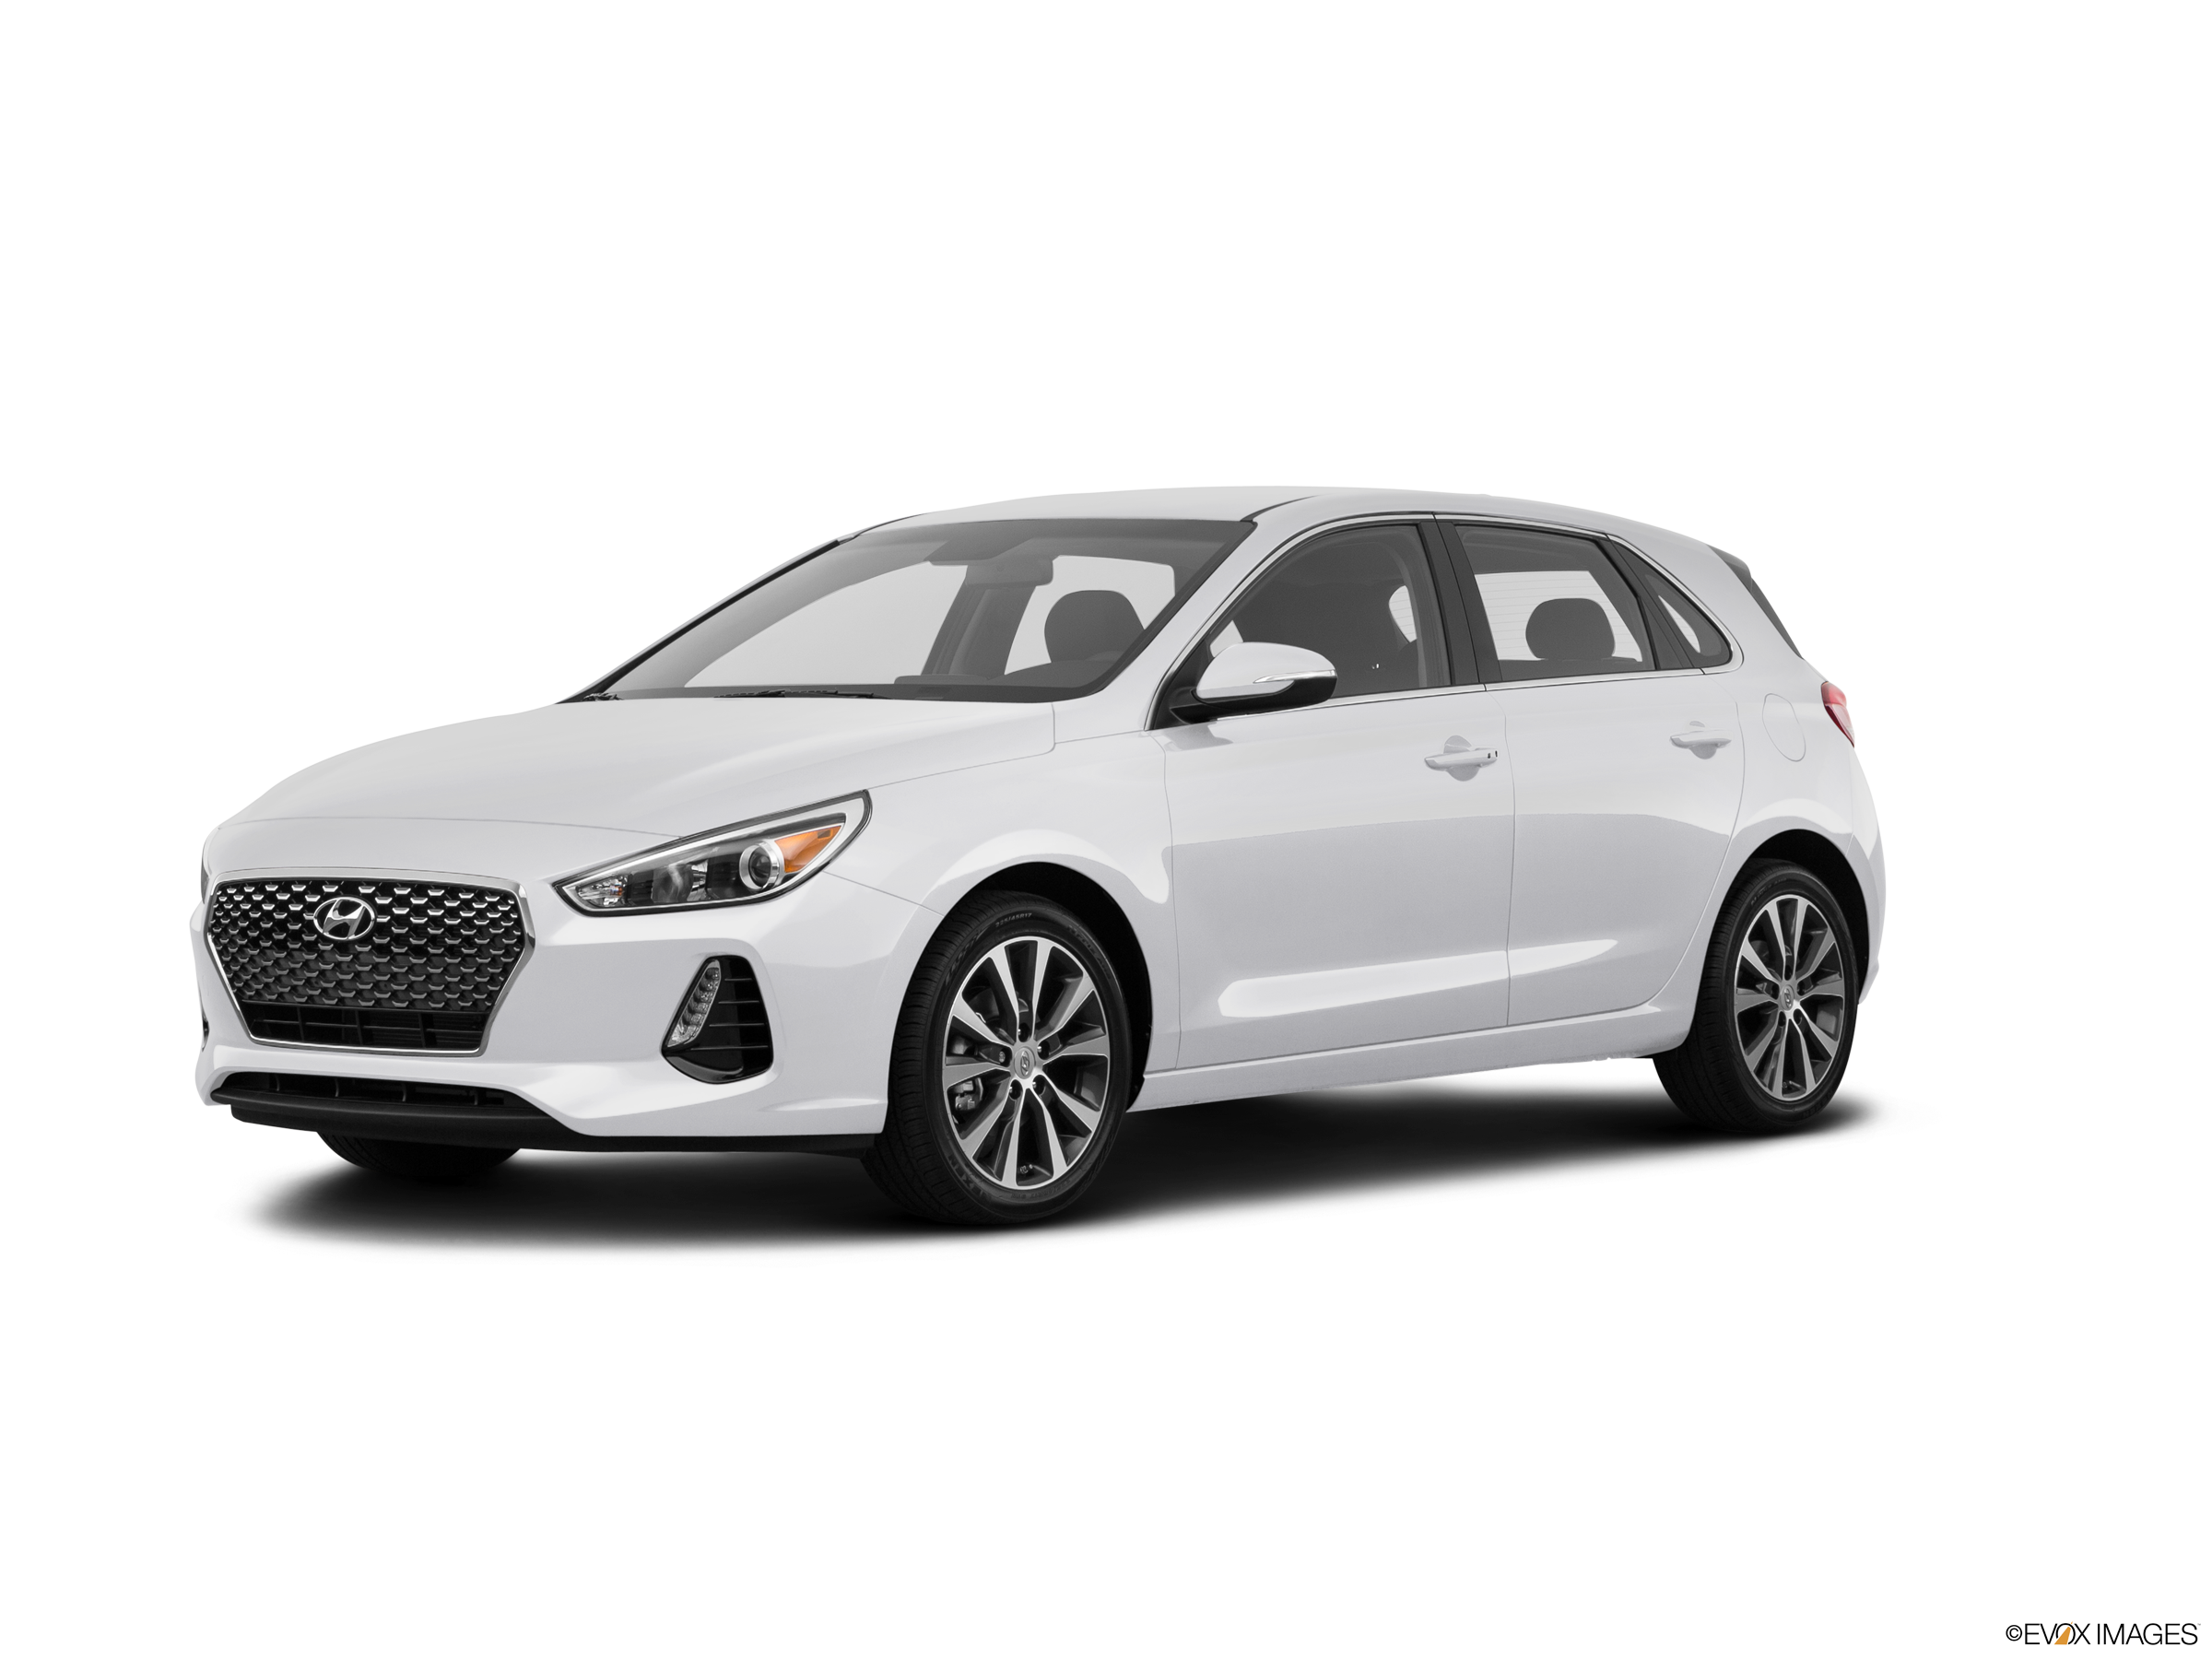 Top Expert Rated Hatchbacks of 2018 - 2018 Hyundai Elantra GT